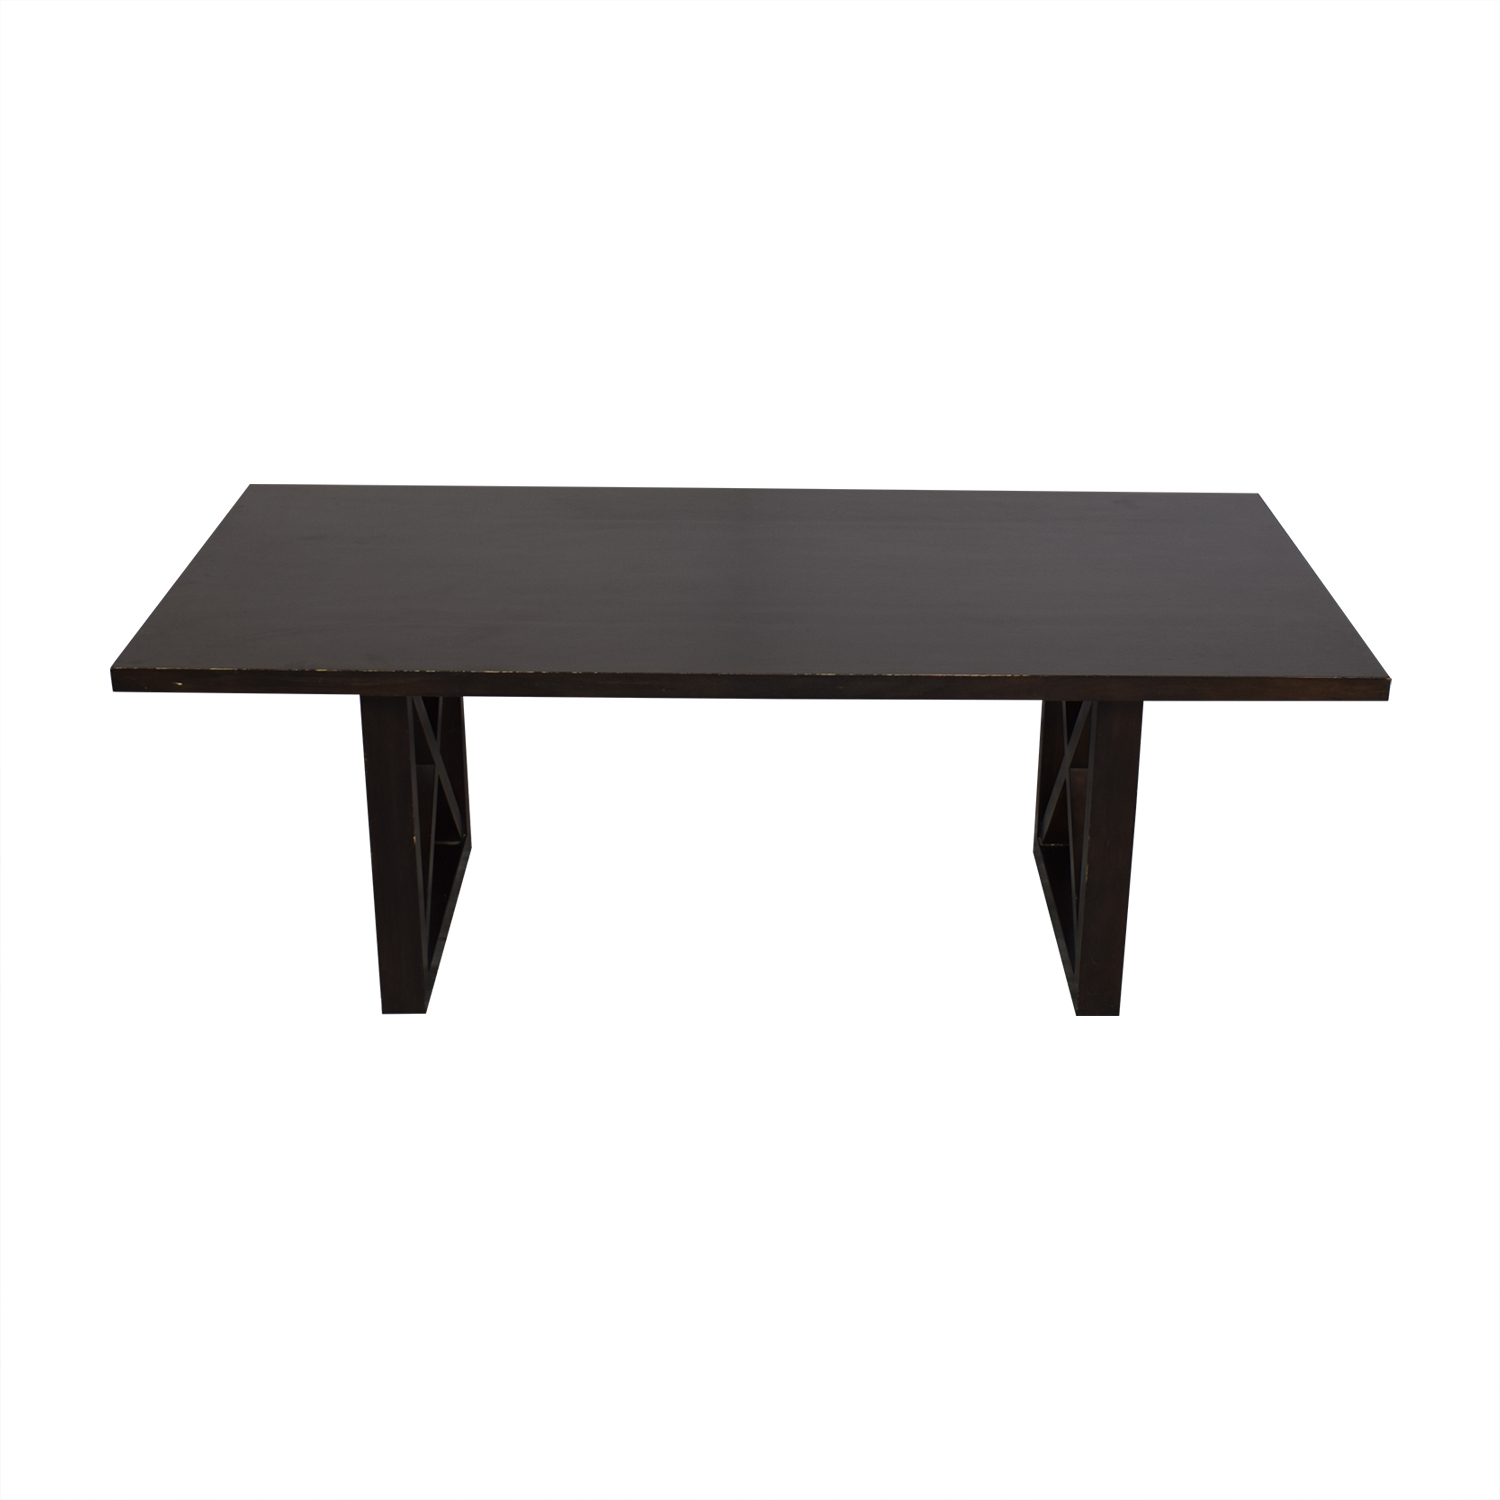 Pottery Barn Extendable Dining Table / Tables